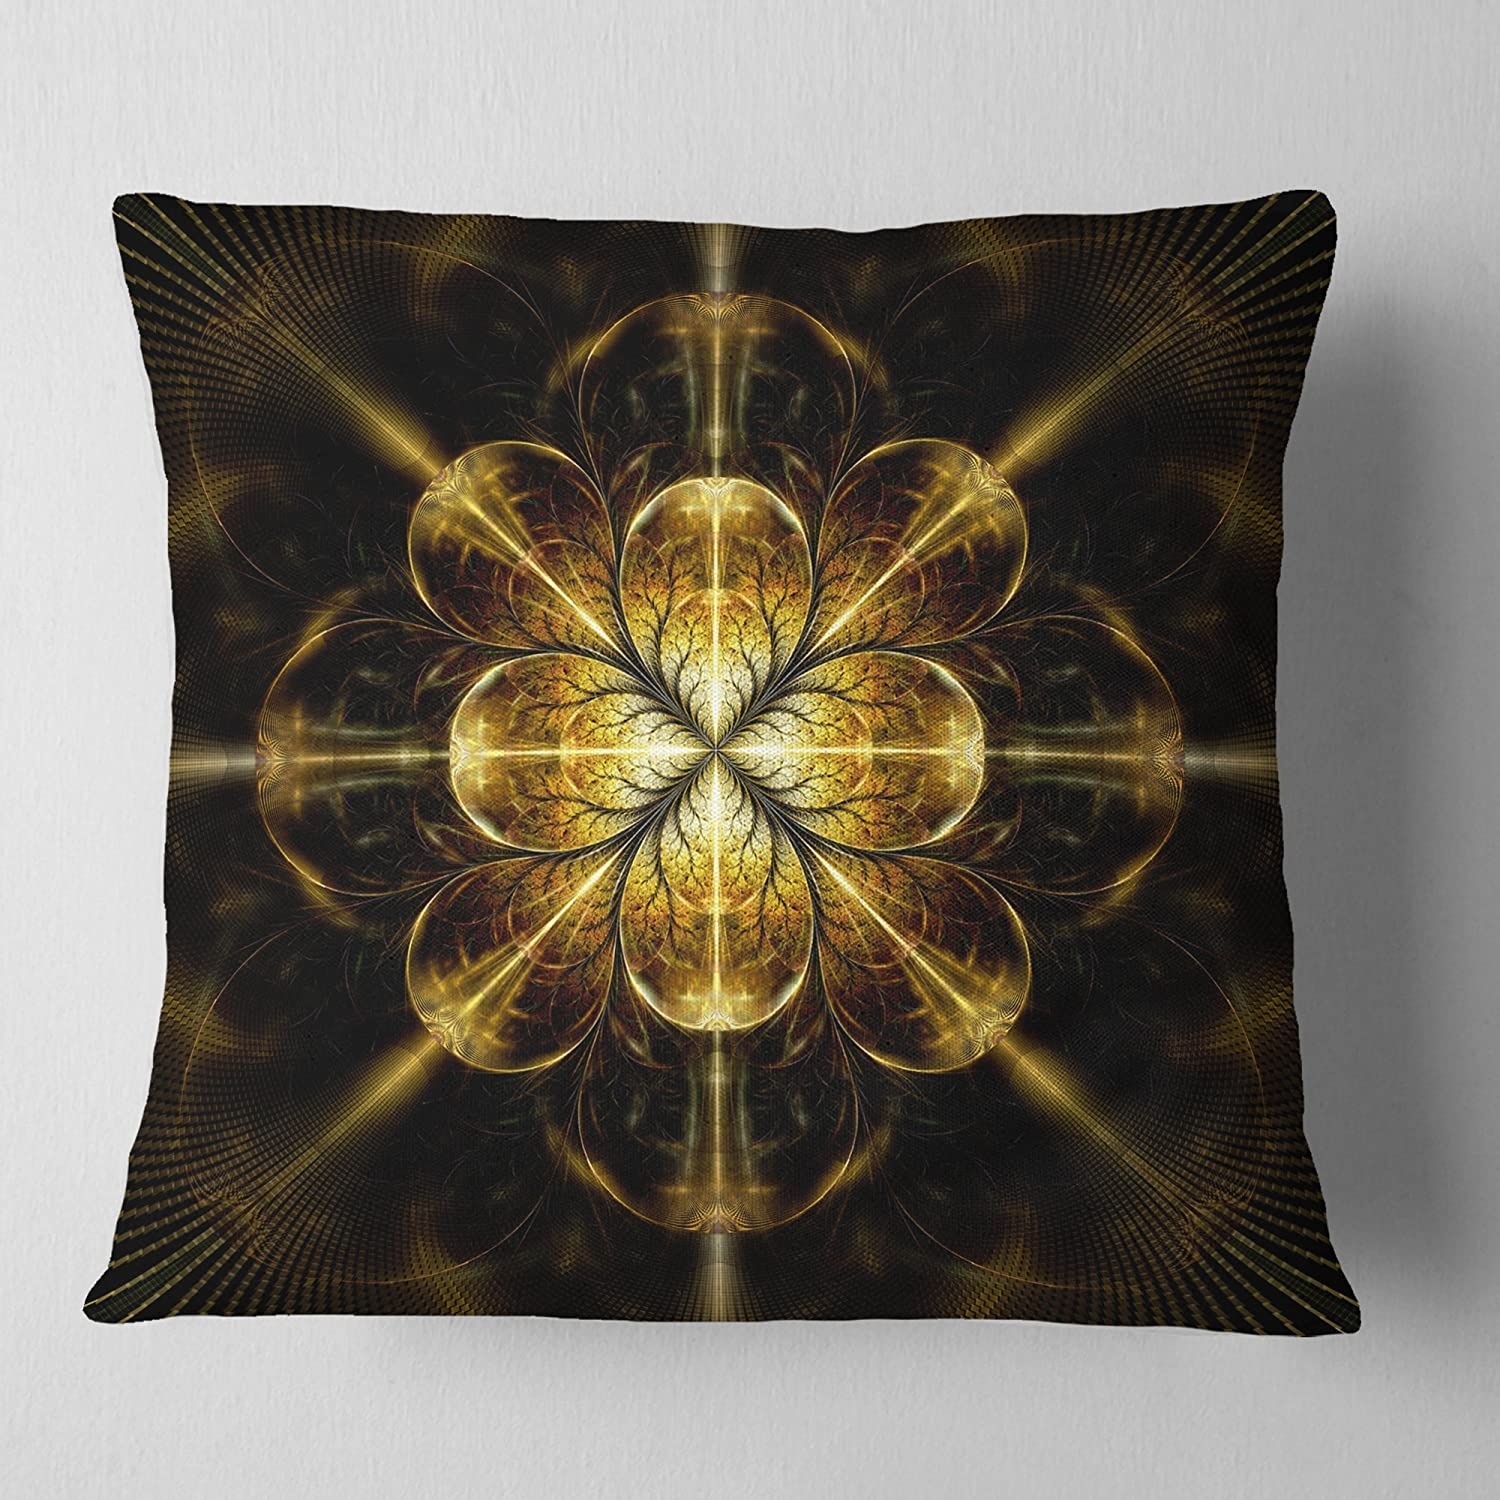 Insert Printed On Both Side Sofa Throw Pillow 26 in Designart CU12035-26-26 Gold Symmetrical Large Fractal Flower Floral Cushion Cover for Living Room in x 26 in